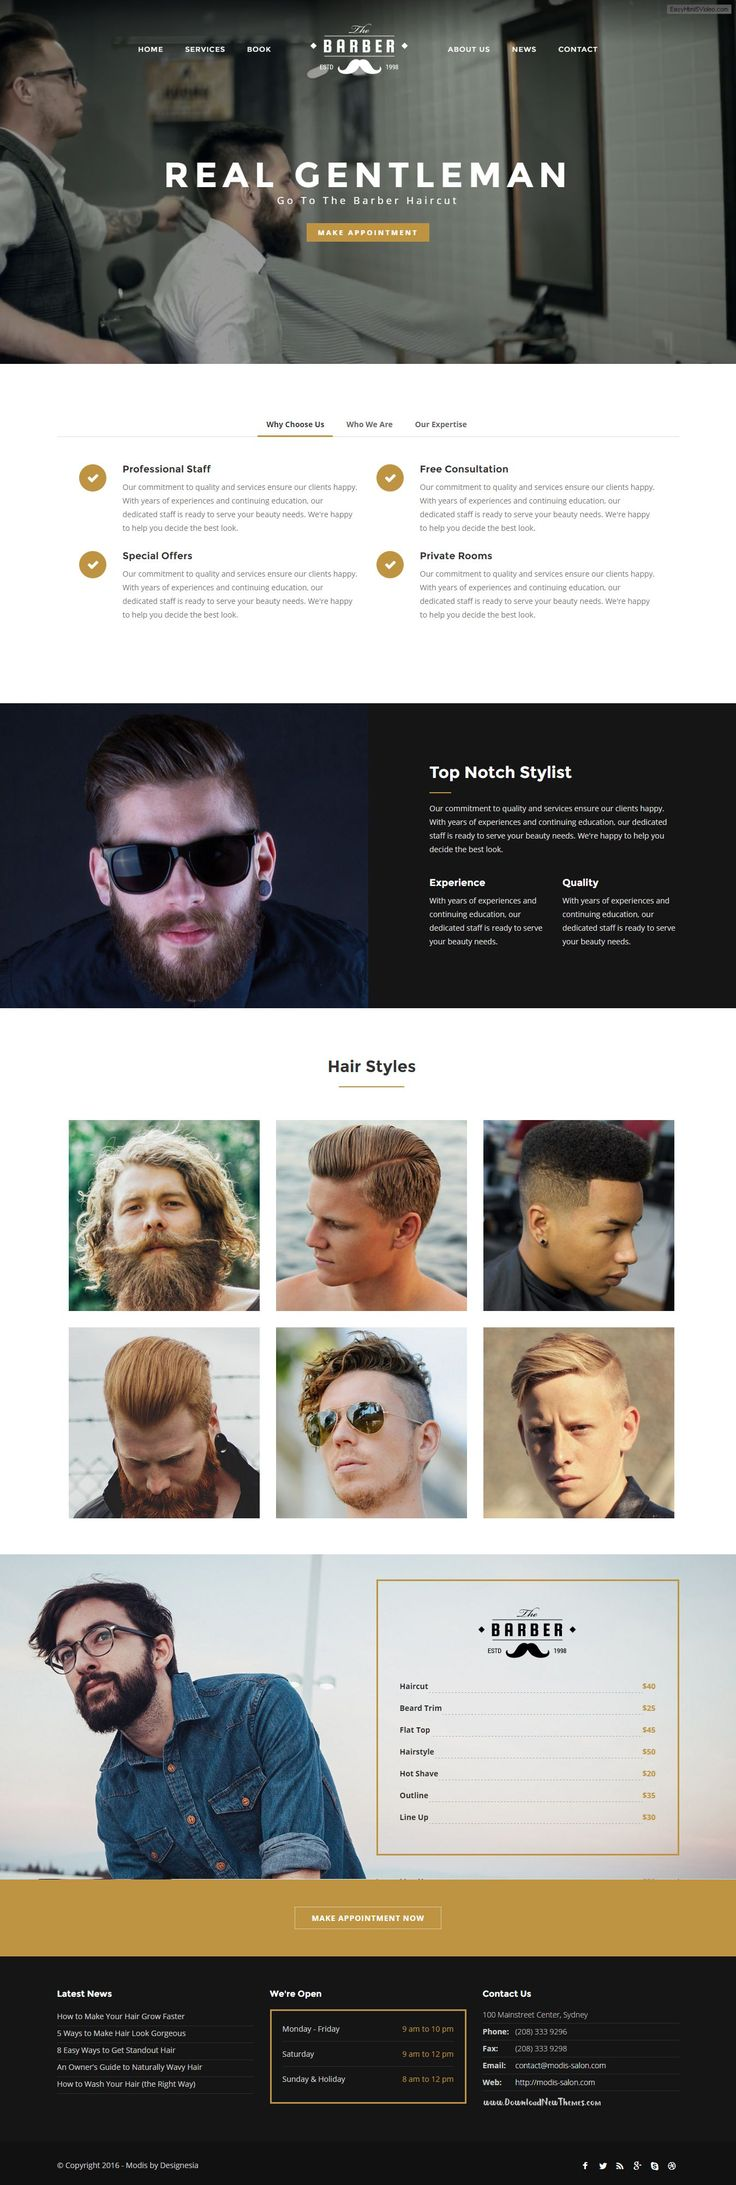 Modis is responsive Bootstrap  HTML 5 website template build with latest trends. Perfectly suited for salon, barber, spa, massage and any else beauty services. #barbershop #webdevelopment